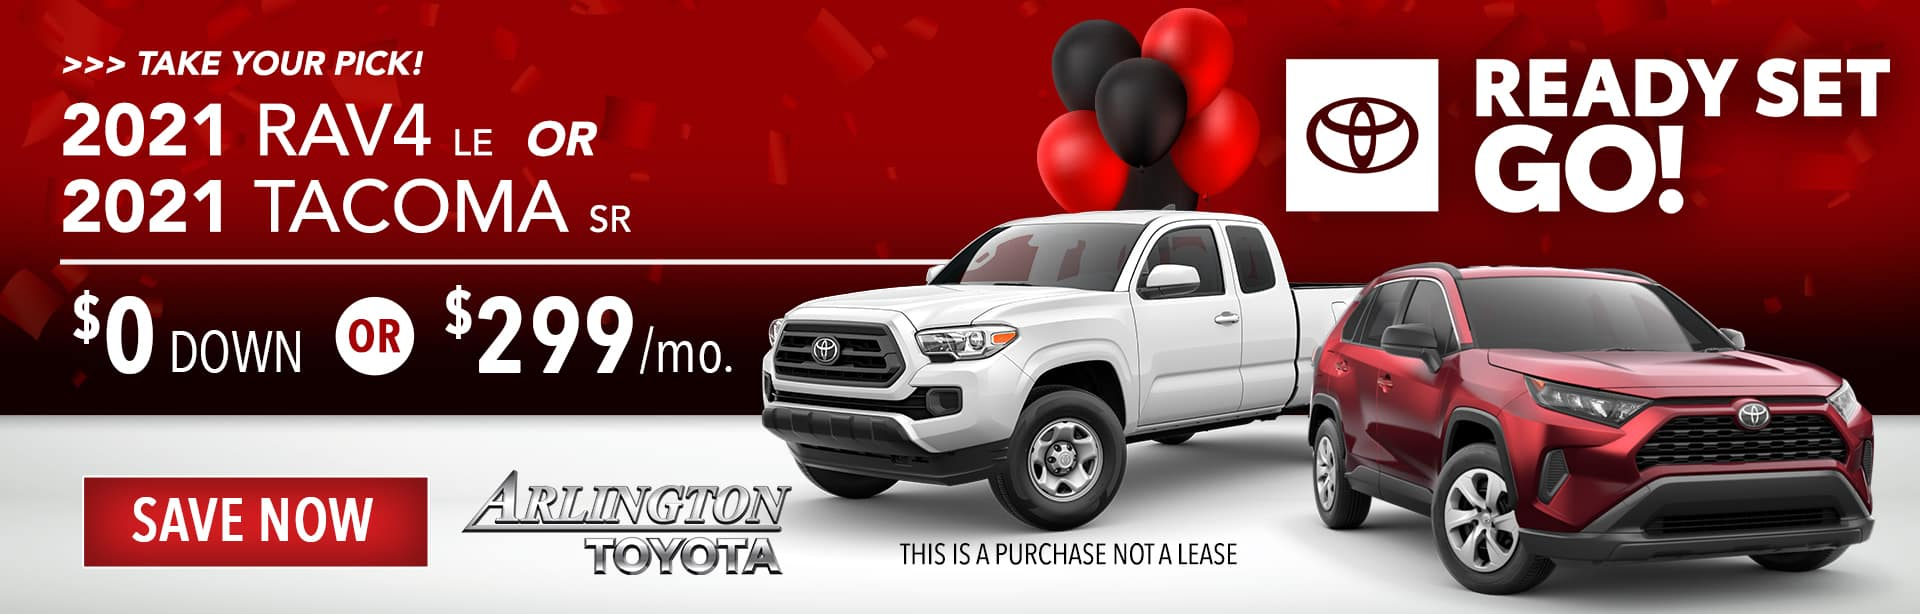 Rav4Tacoma_ReadySetGo_Feb2021_Homepage1920x614